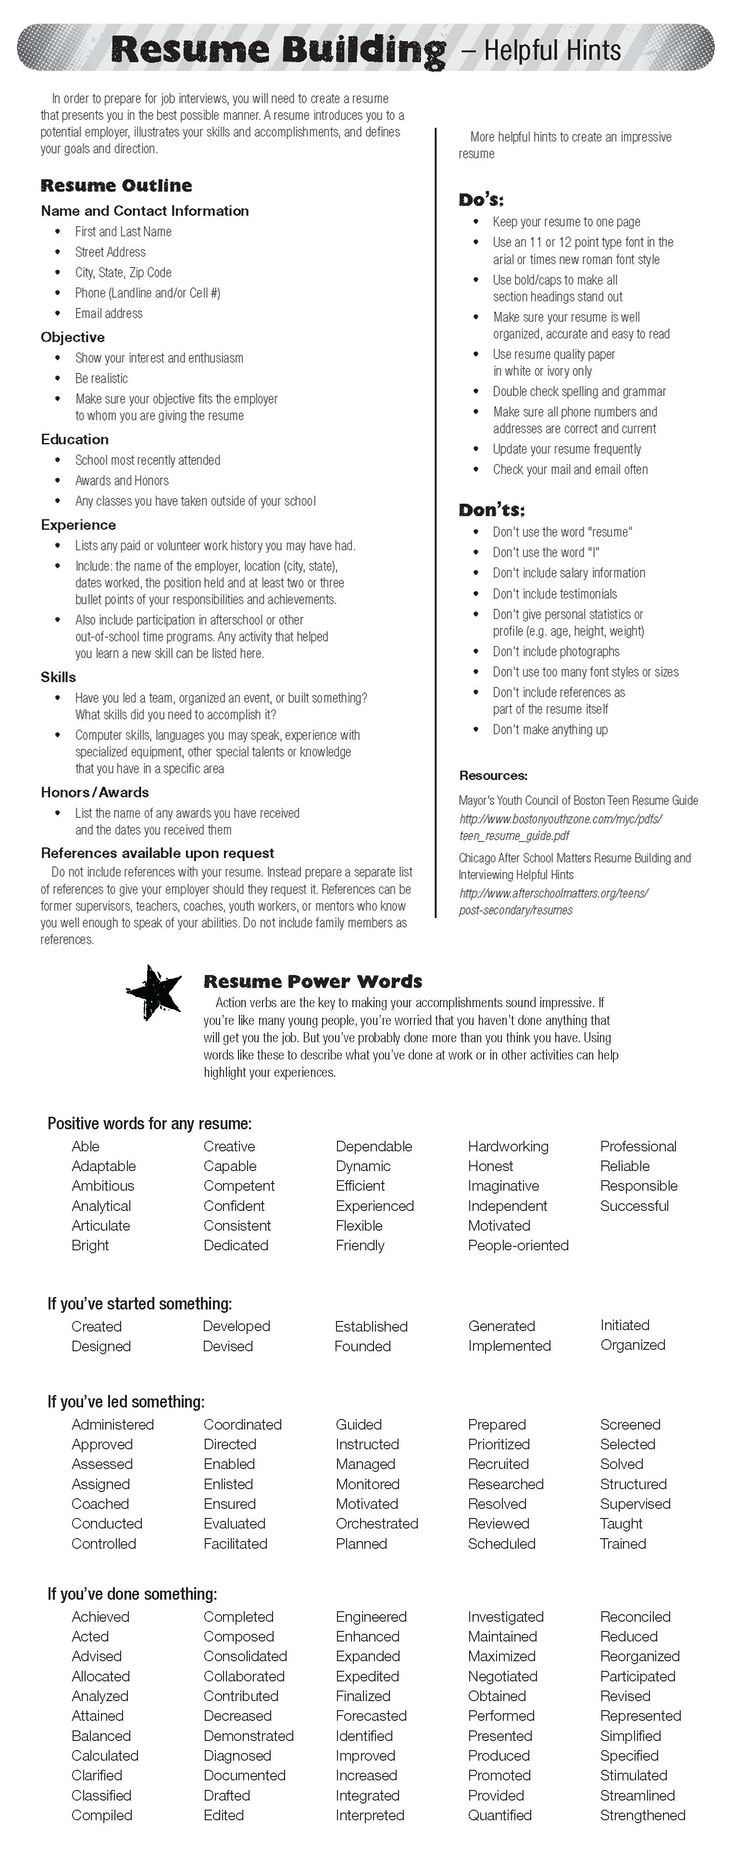 Opposenewapstandardsus  Terrific  Ideas About Resume On Pinterest  Cv Format Resume Cv And  With Magnificent  Ideas About Resume On Pinterest  Cv Format Resume Cv And Resume Templates With Delightful Maintenance Manager Resume Also Resume For Hostess In Addition Nursing Resume Template Free And Assistant Manager Resume Sample As Well As Computer Skills On A Resume Additionally High Schooler Resume From Pinterestcom With Opposenewapstandardsus  Magnificent  Ideas About Resume On Pinterest  Cv Format Resume Cv And  With Delightful  Ideas About Resume On Pinterest  Cv Format Resume Cv And Resume Templates And Terrific Maintenance Manager Resume Also Resume For Hostess In Addition Nursing Resume Template Free From Pinterestcom